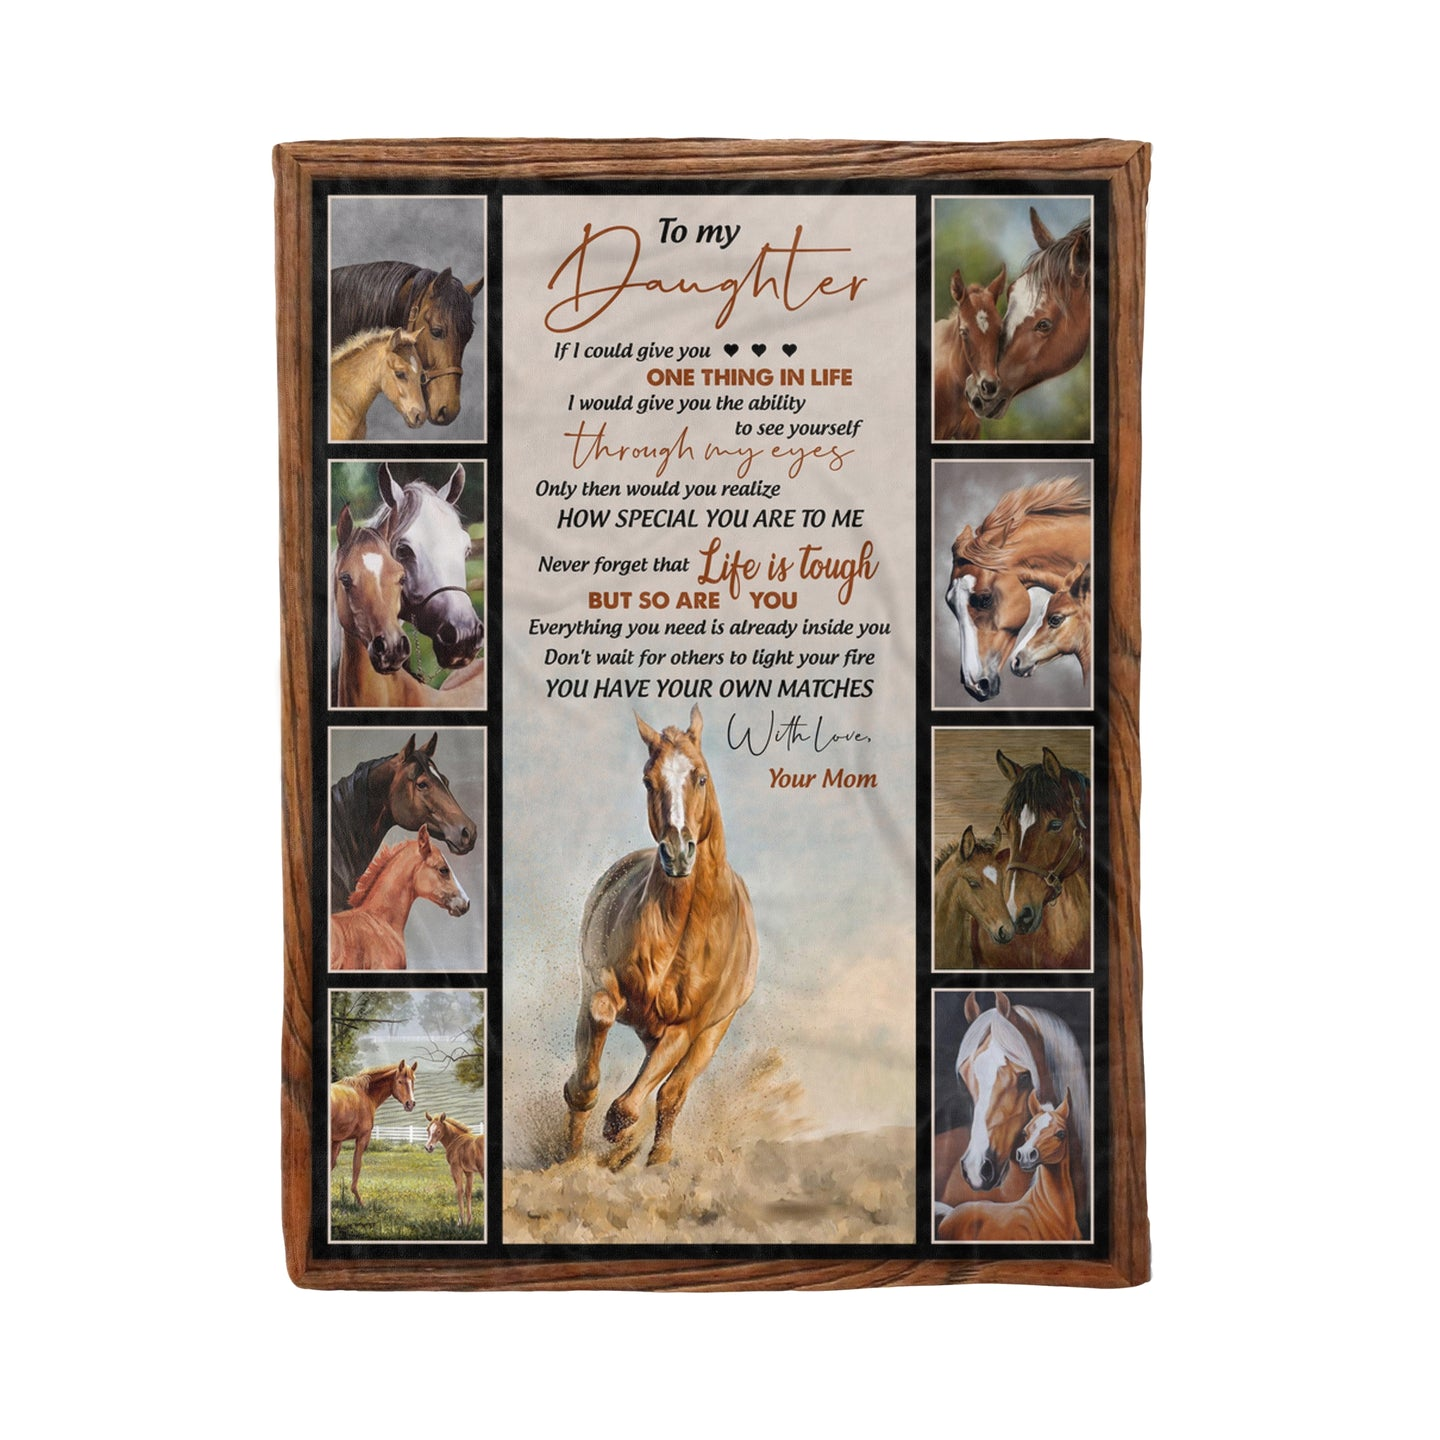 Daughter From Mom Blanket Wild Horse Lovers Family Birthday Matching Gift - Fleece Blanket